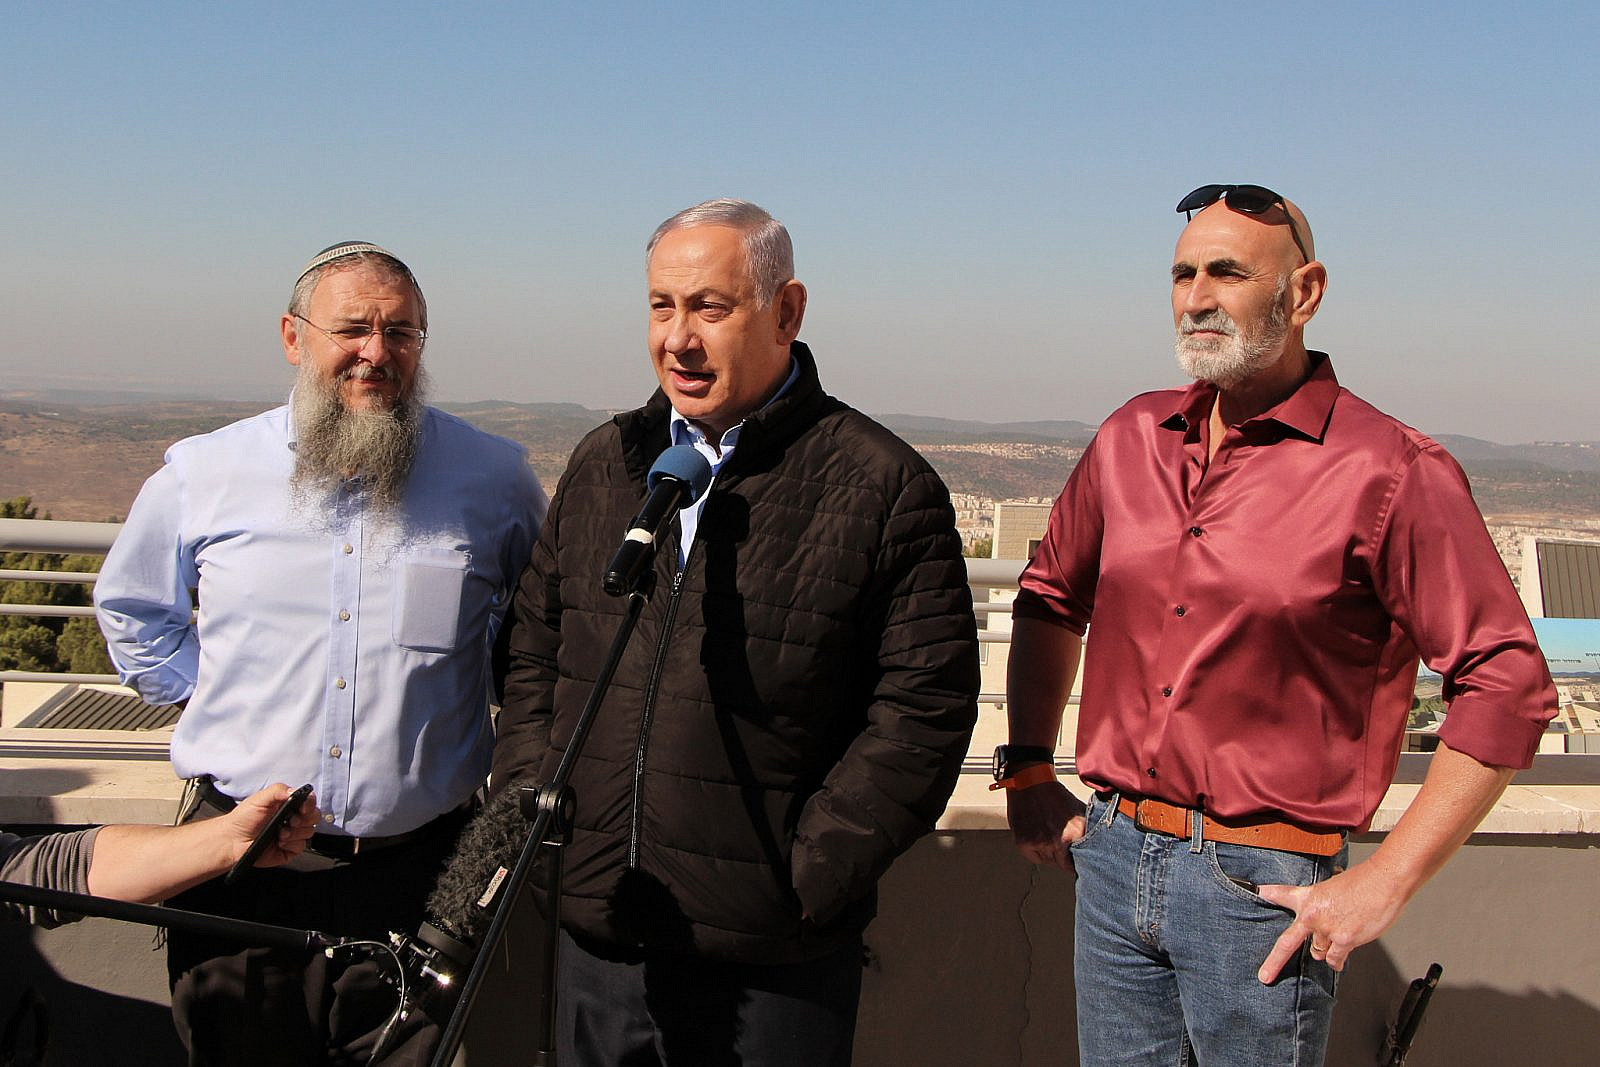 Prime Minister Benjamin Netanyahu with Gush Etzion Regional Council Chairman Shlomo Ne'eman, and Jordan Valley regional council chairman David Elchiani, as he visits the Jewish settlement of Alon Shvut in Gush Etzion, in the West Bank. November 19, 2019. (Gershon Elinson/Flash90)